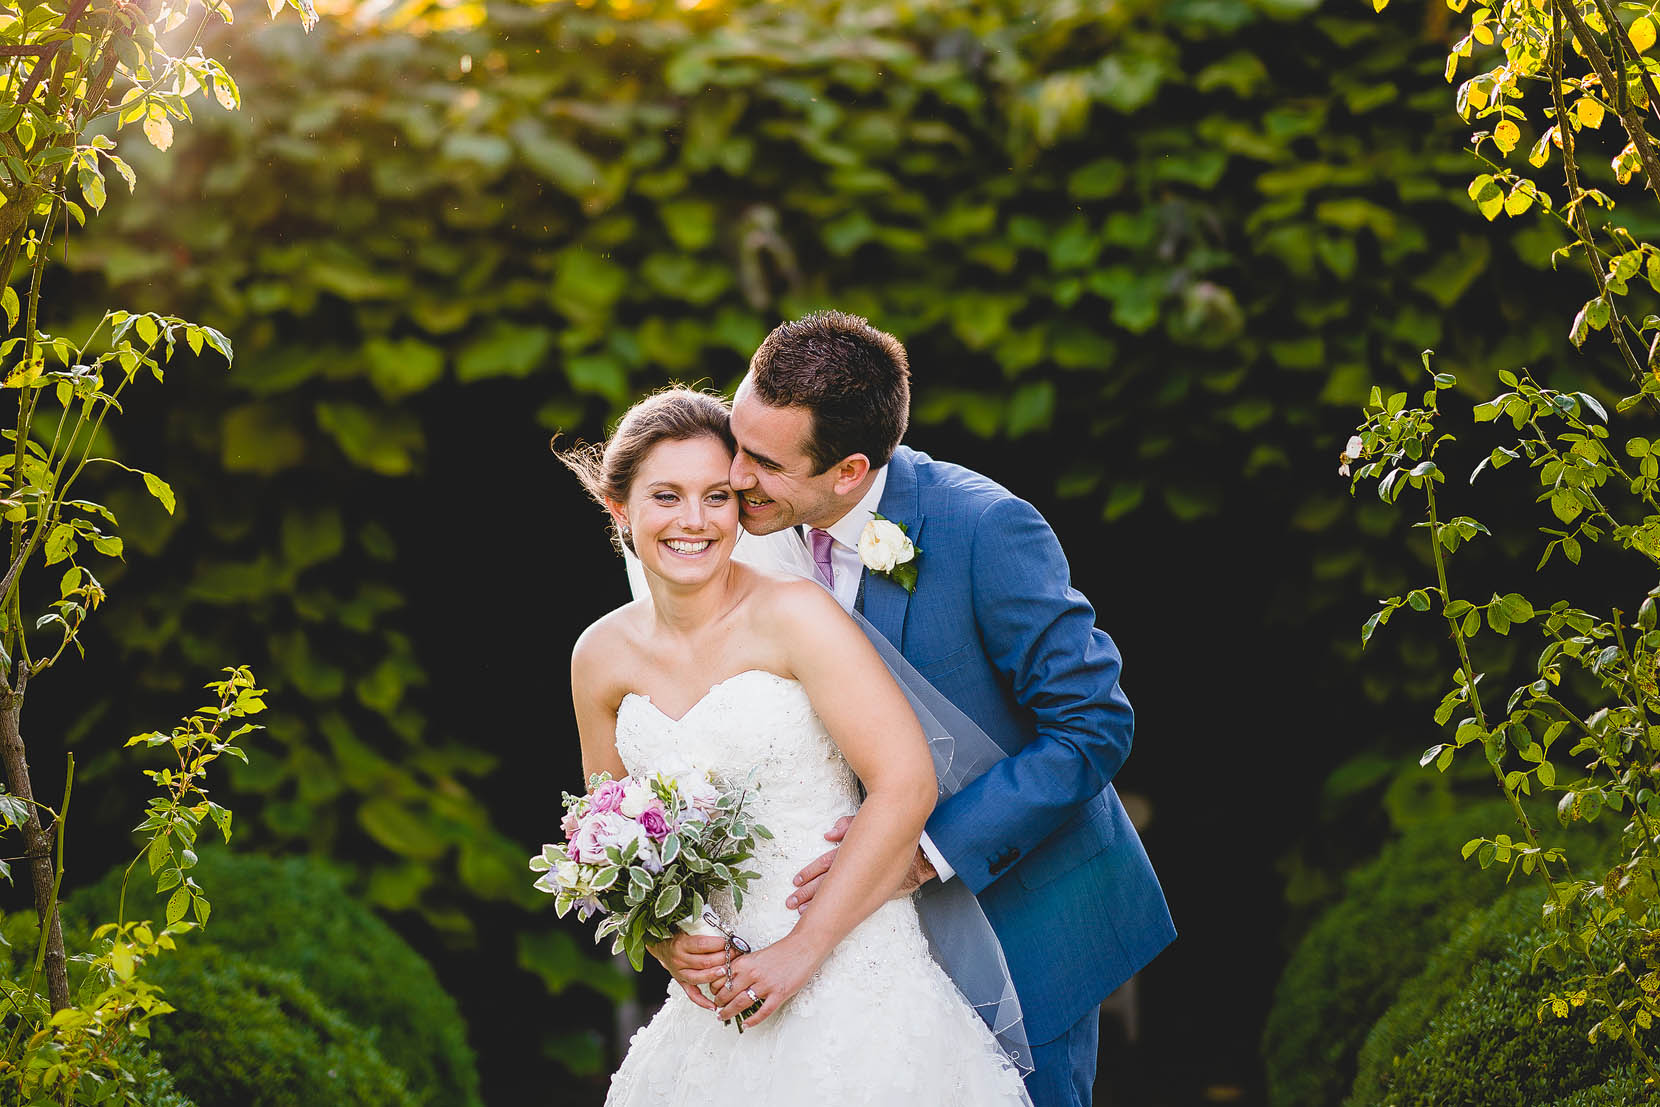 Elms barn bride and groom having a cuddle in some lovely evening light